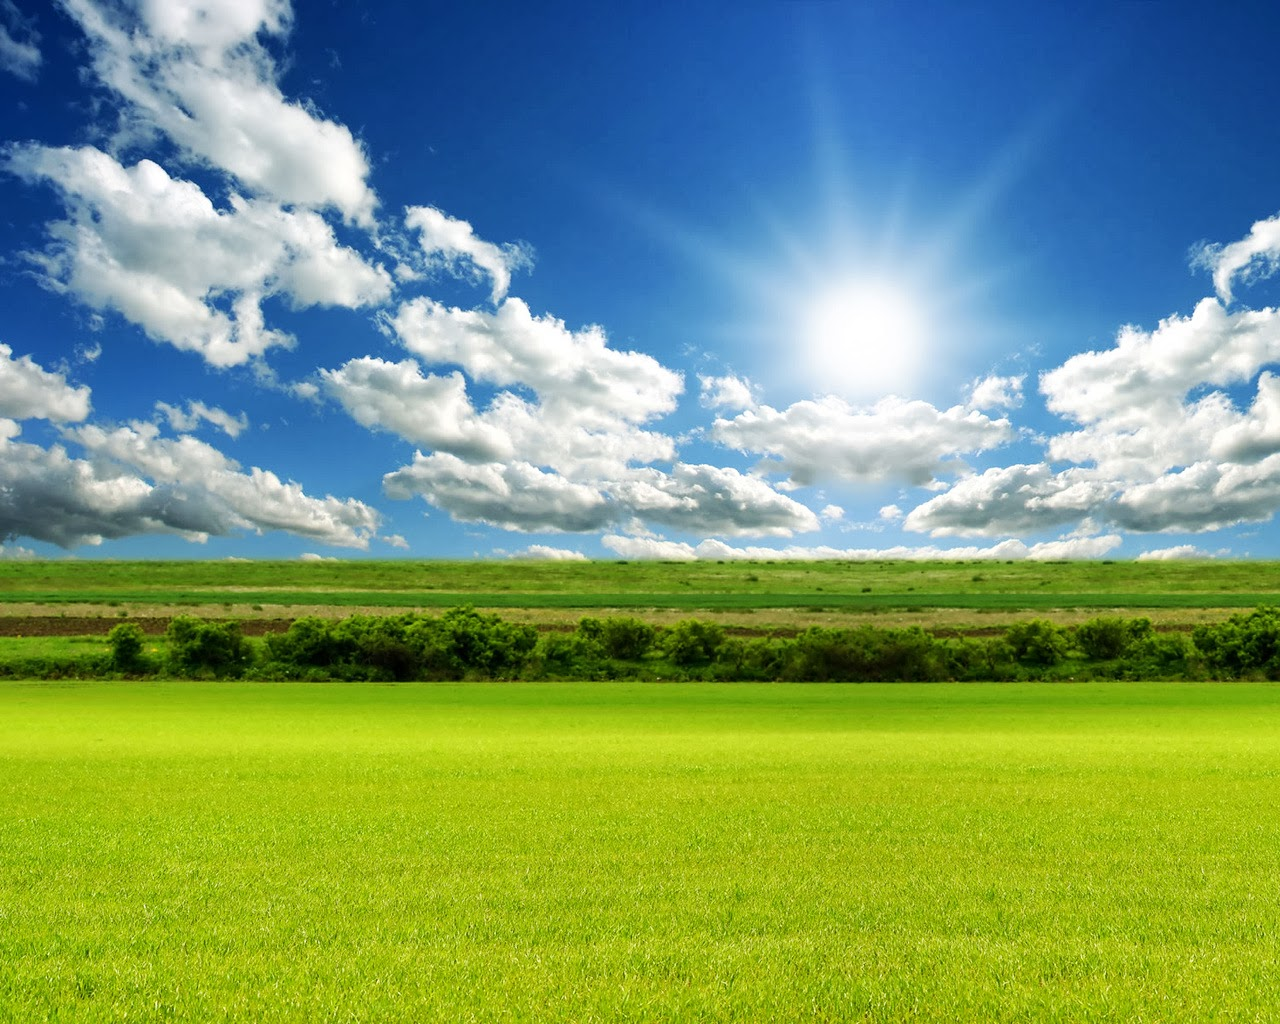 Nature Wallpapers Free Download For Pc